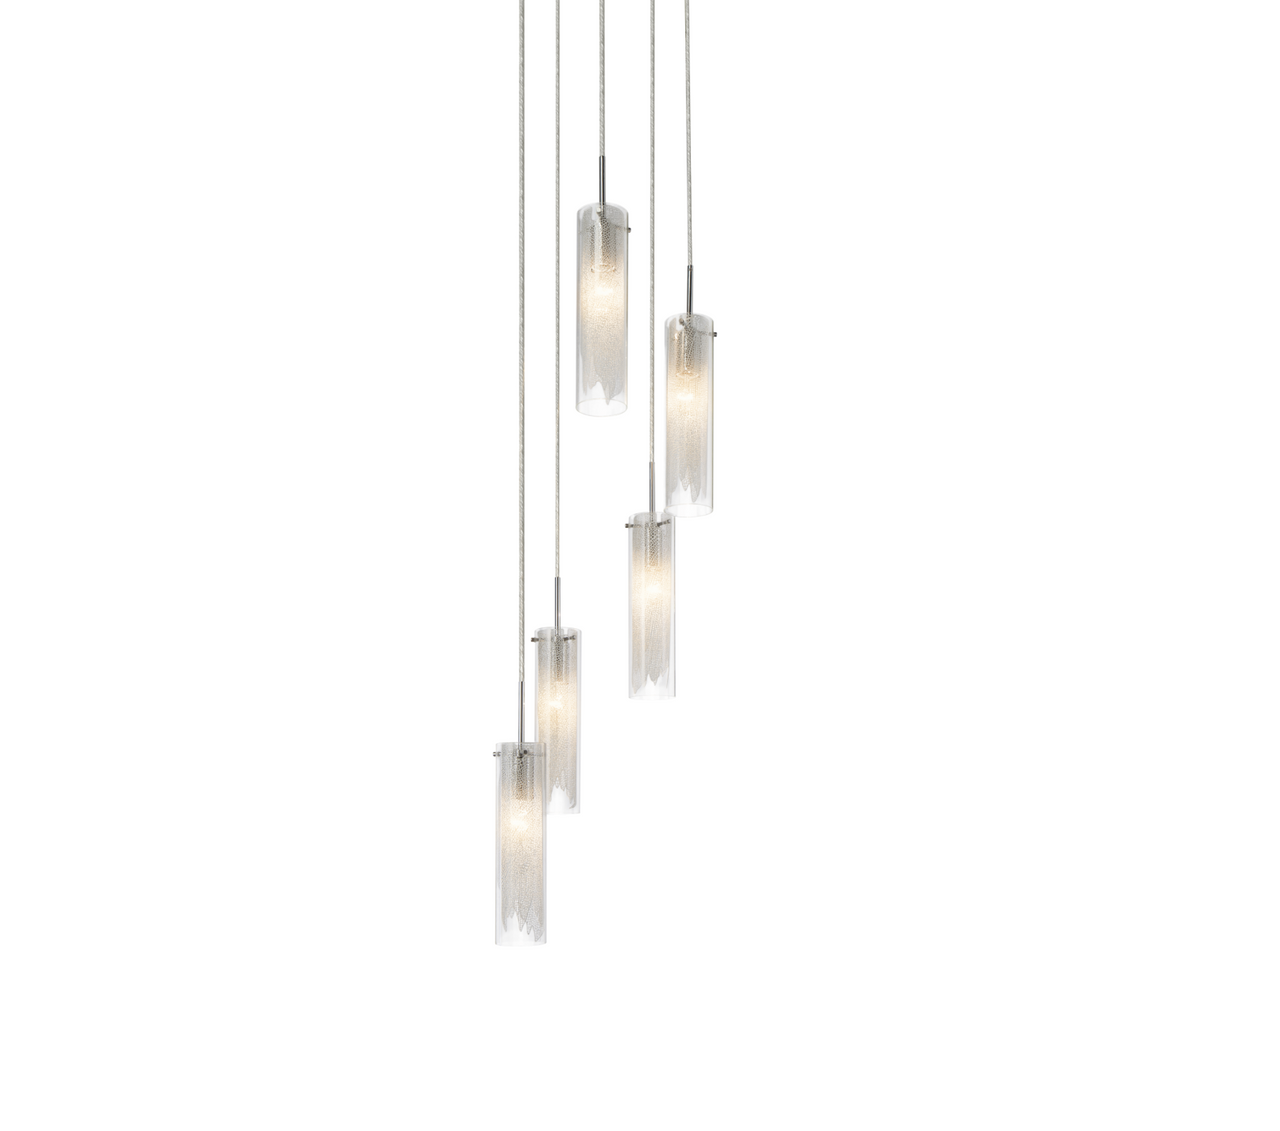 Krysalis™ – Model 83067 5 Light Spiral Mini Pendant Chandelier - Euro Living Furniture